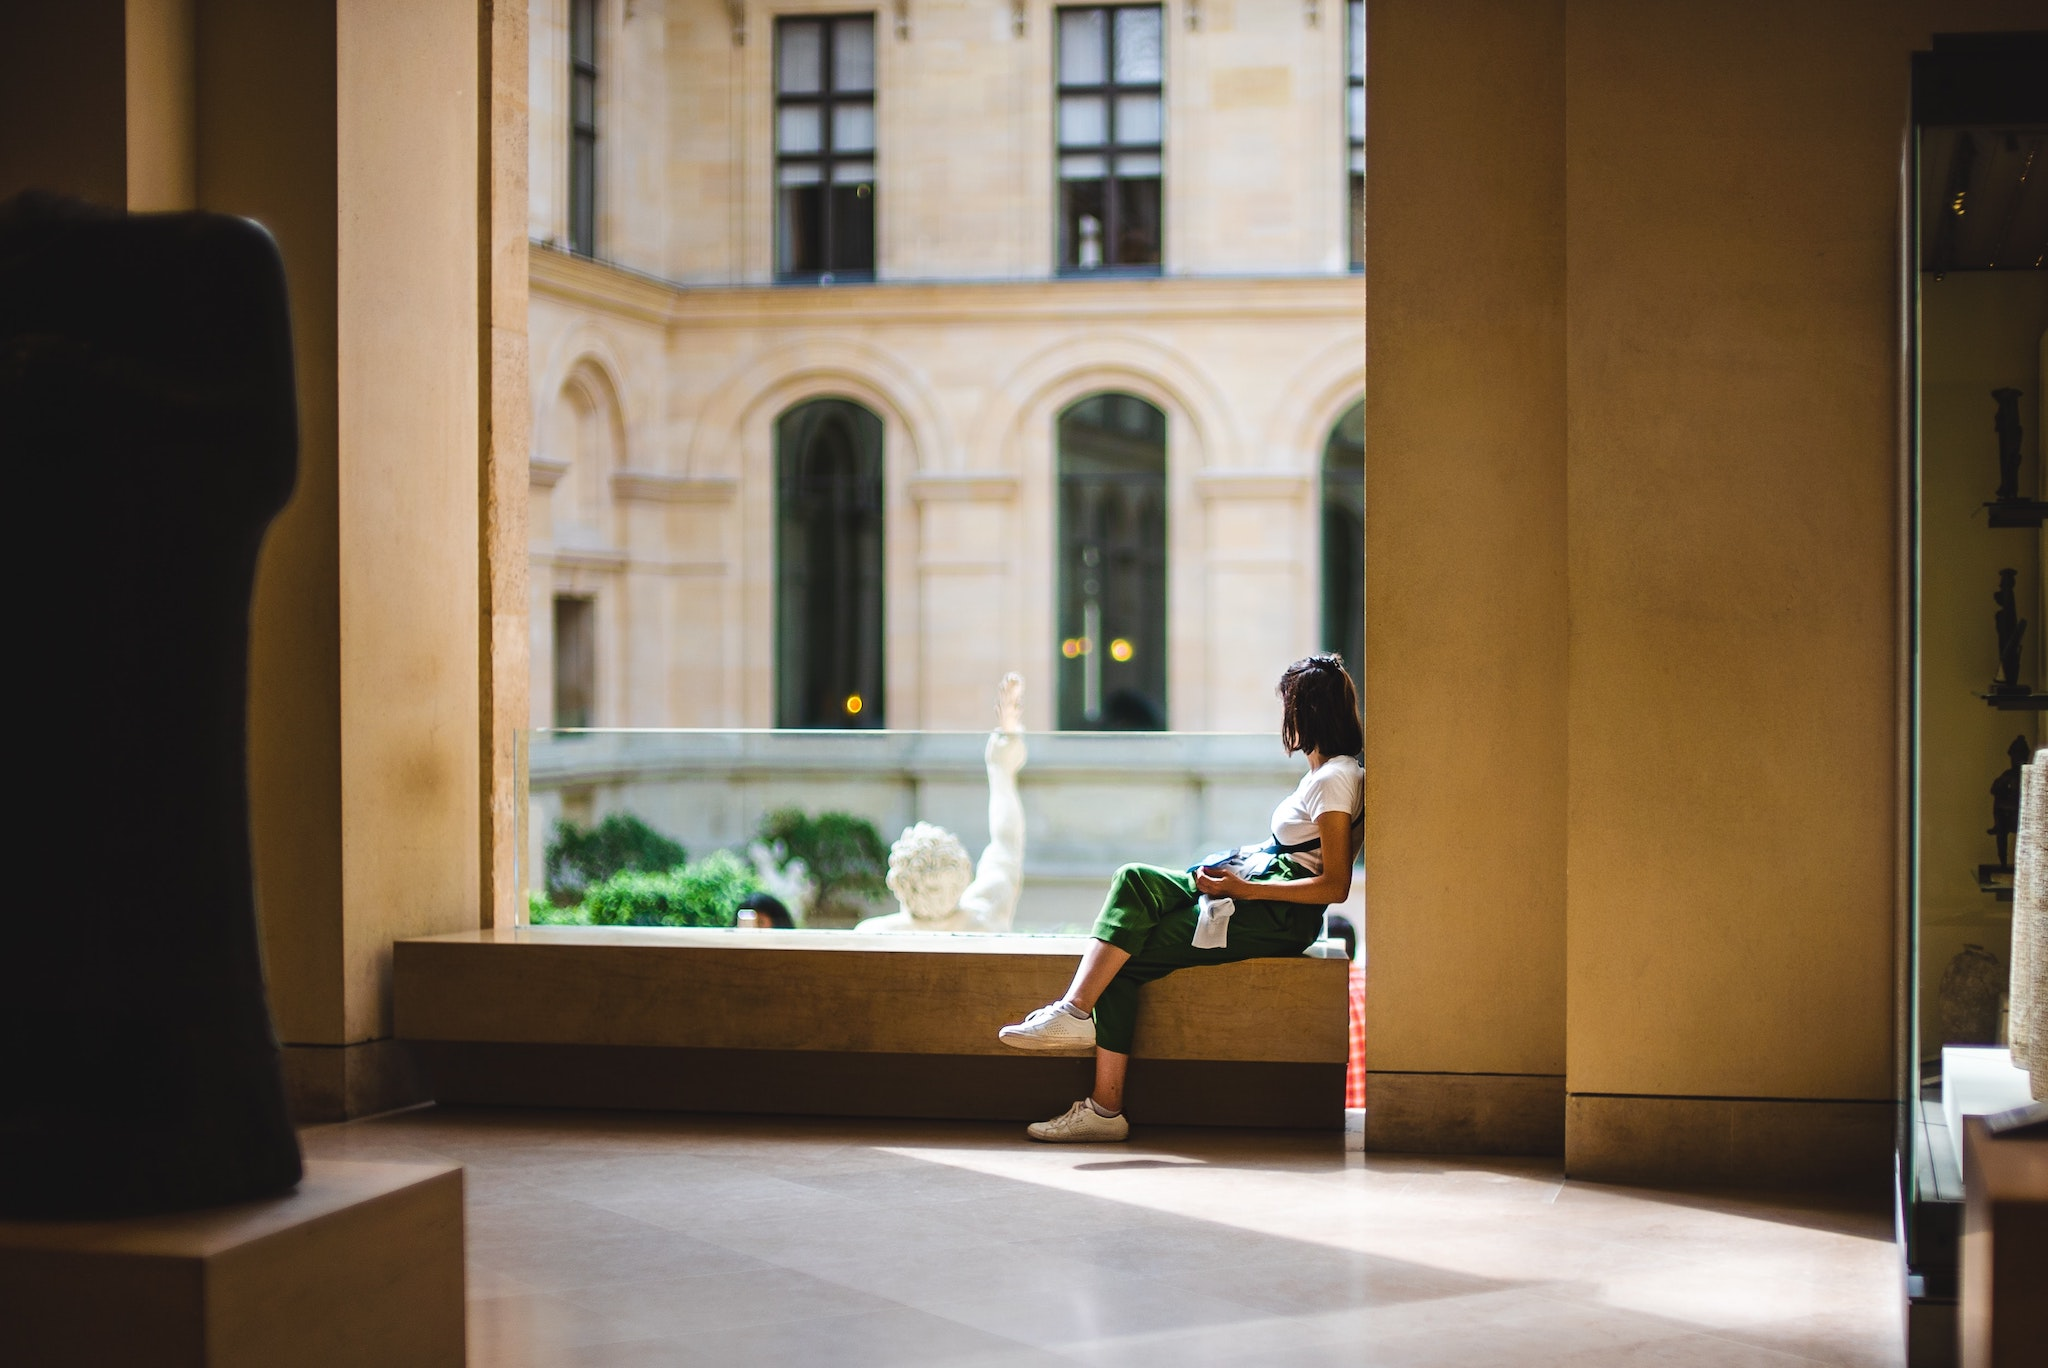 A brunette girl in a white t-shirt and green pants, wearing white sneakers, sitting on a bench seat in the Louvre Museum. She is looking away from the camera to an inner sculpture courtyard.